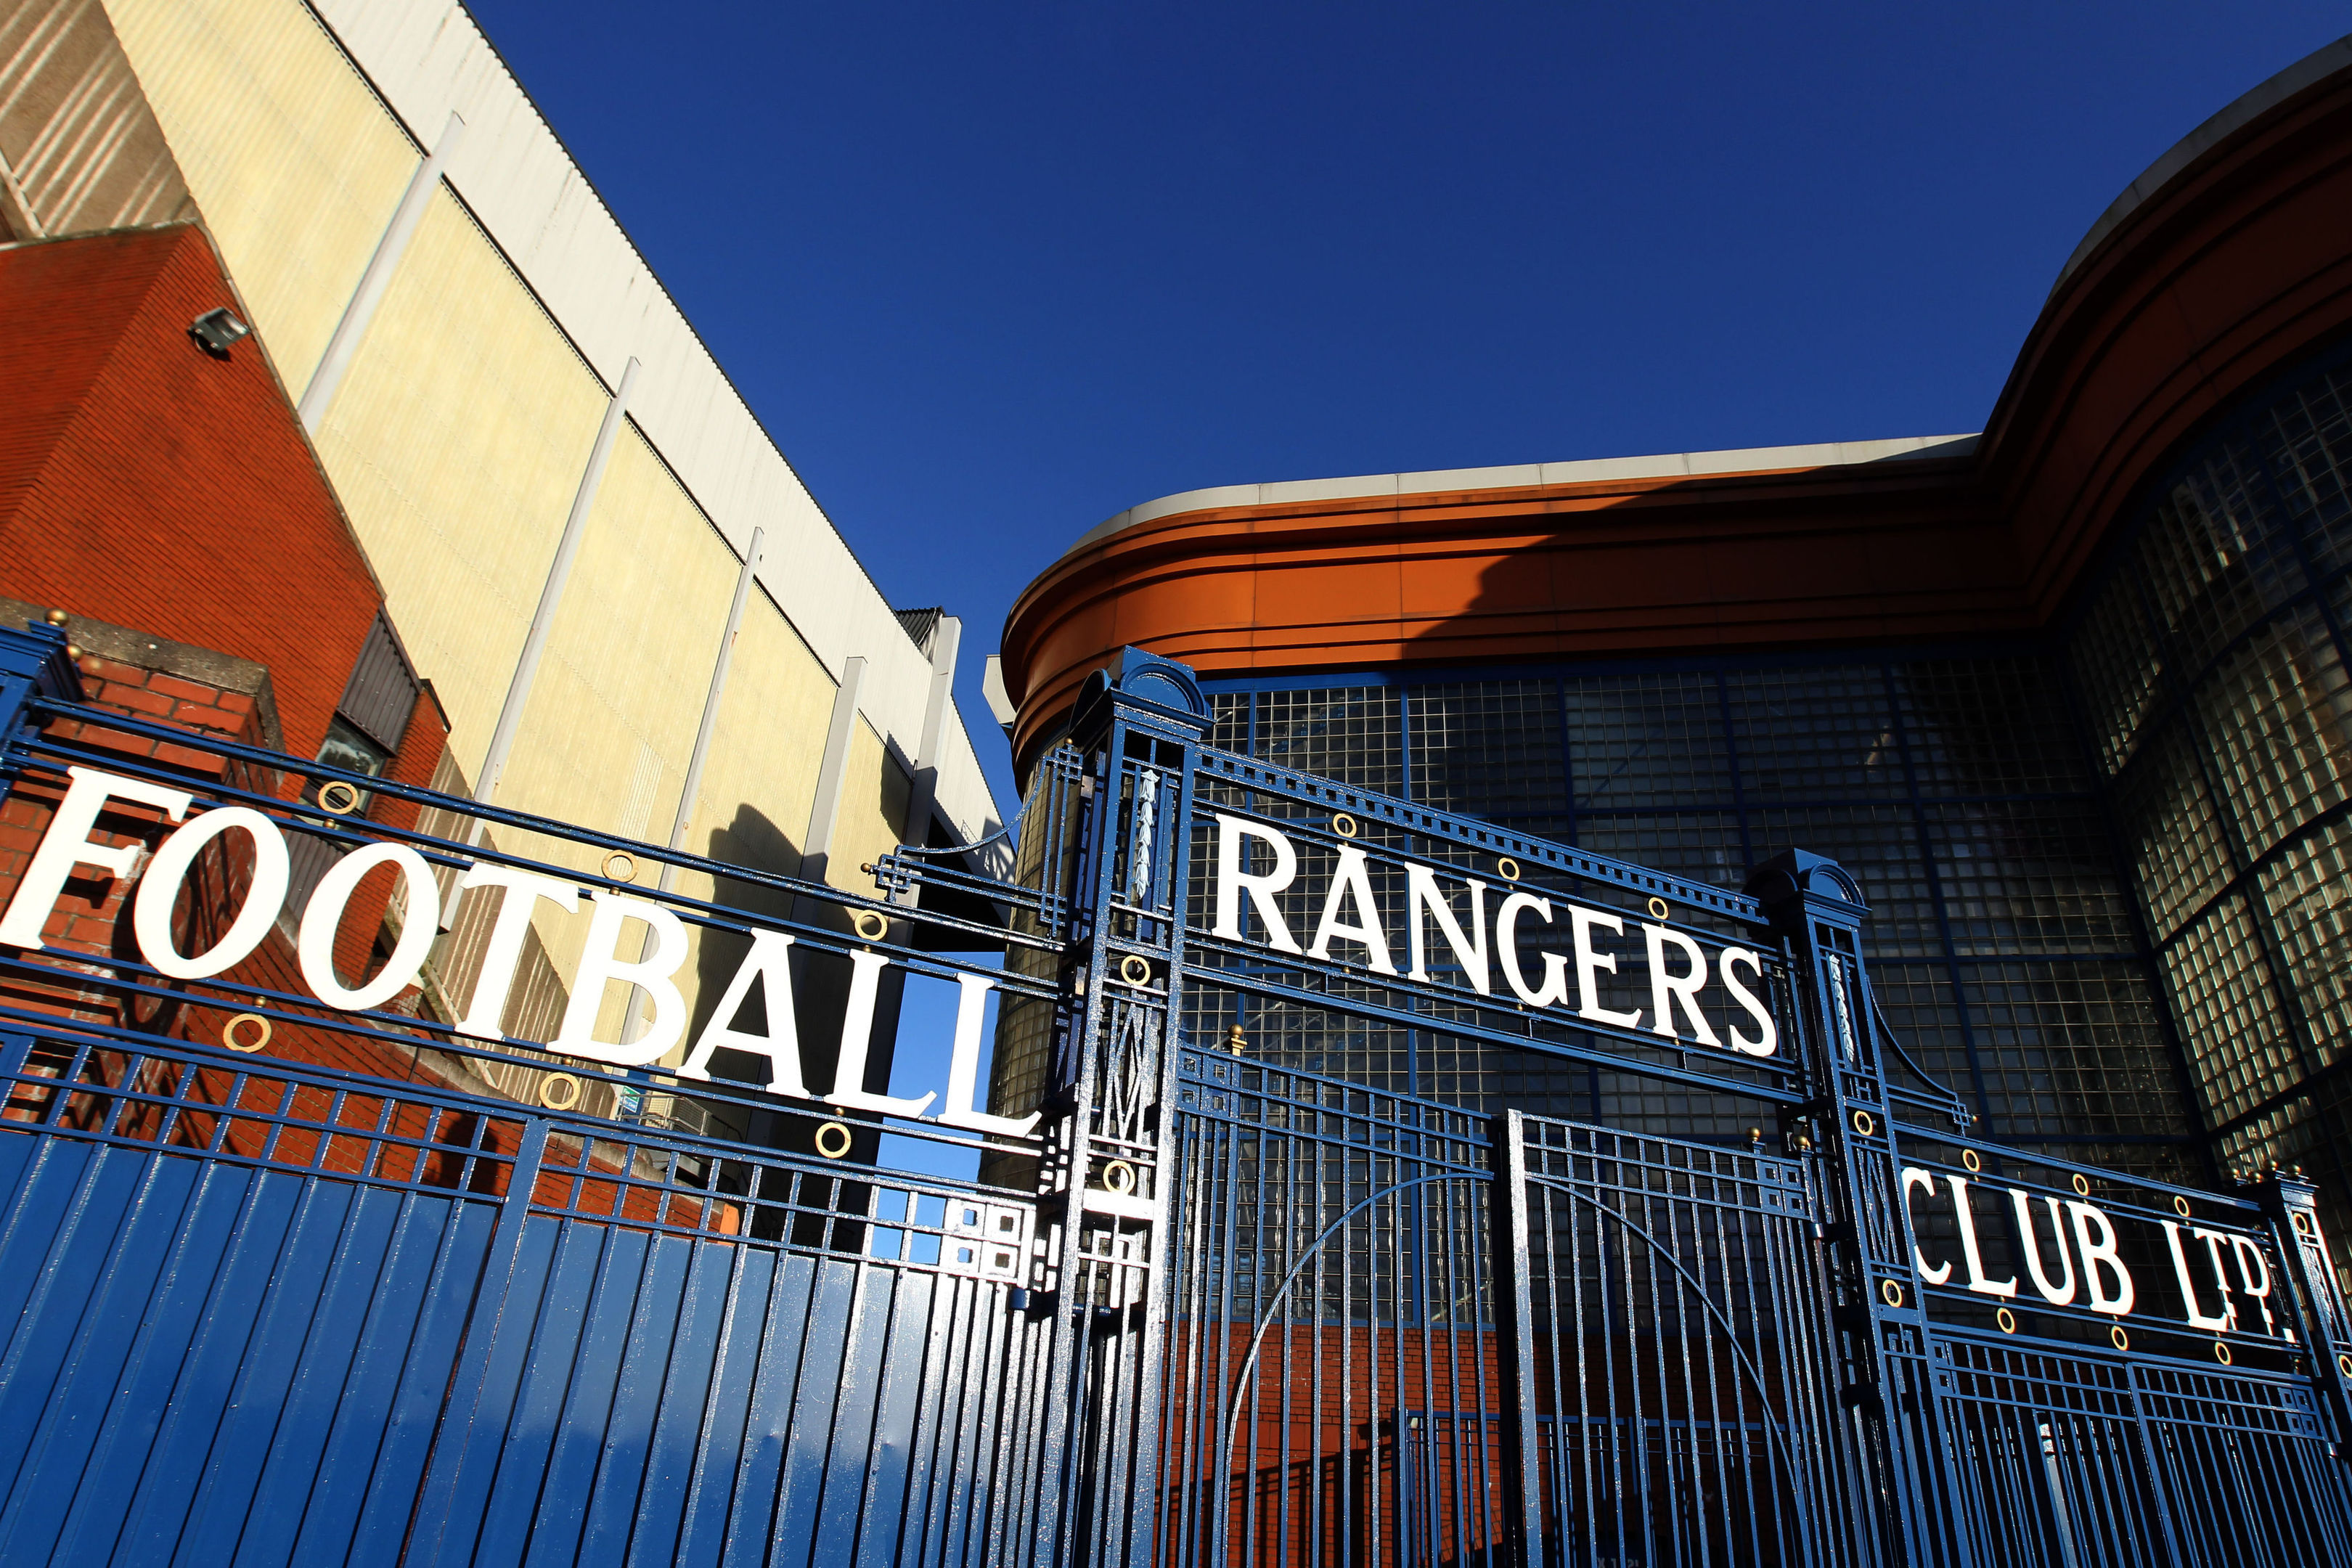 The gates at Ibrox Stadium.